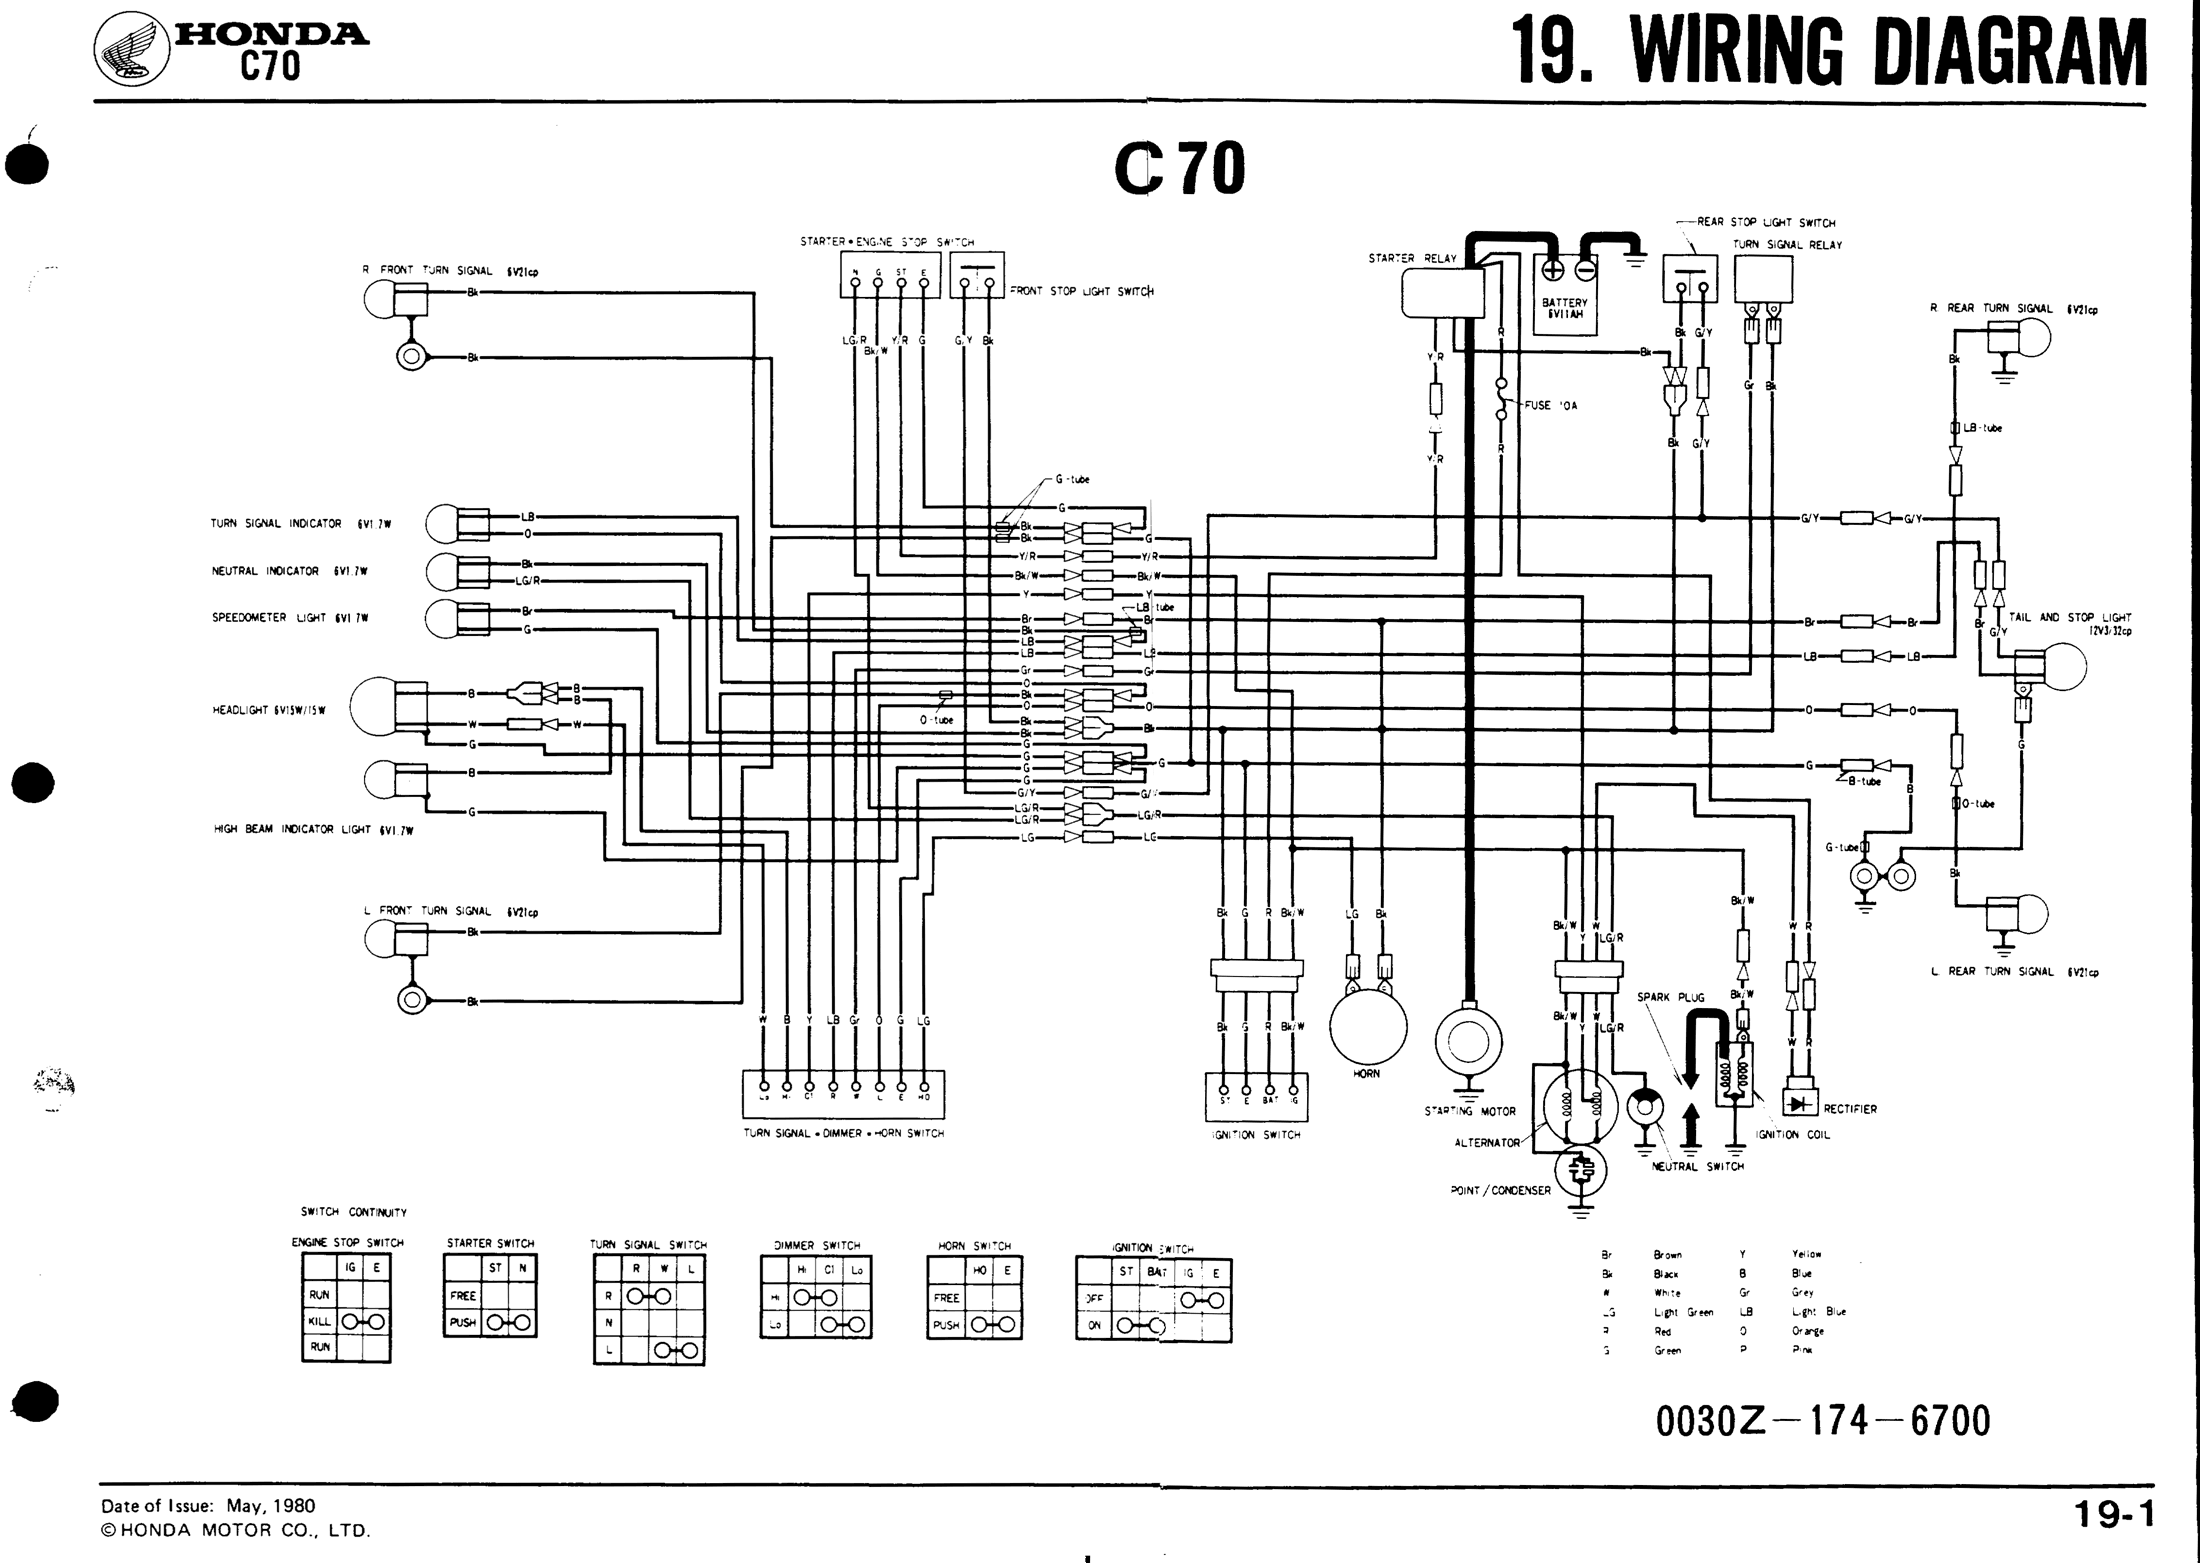 honda wiring diagram   20 wiring diagram images